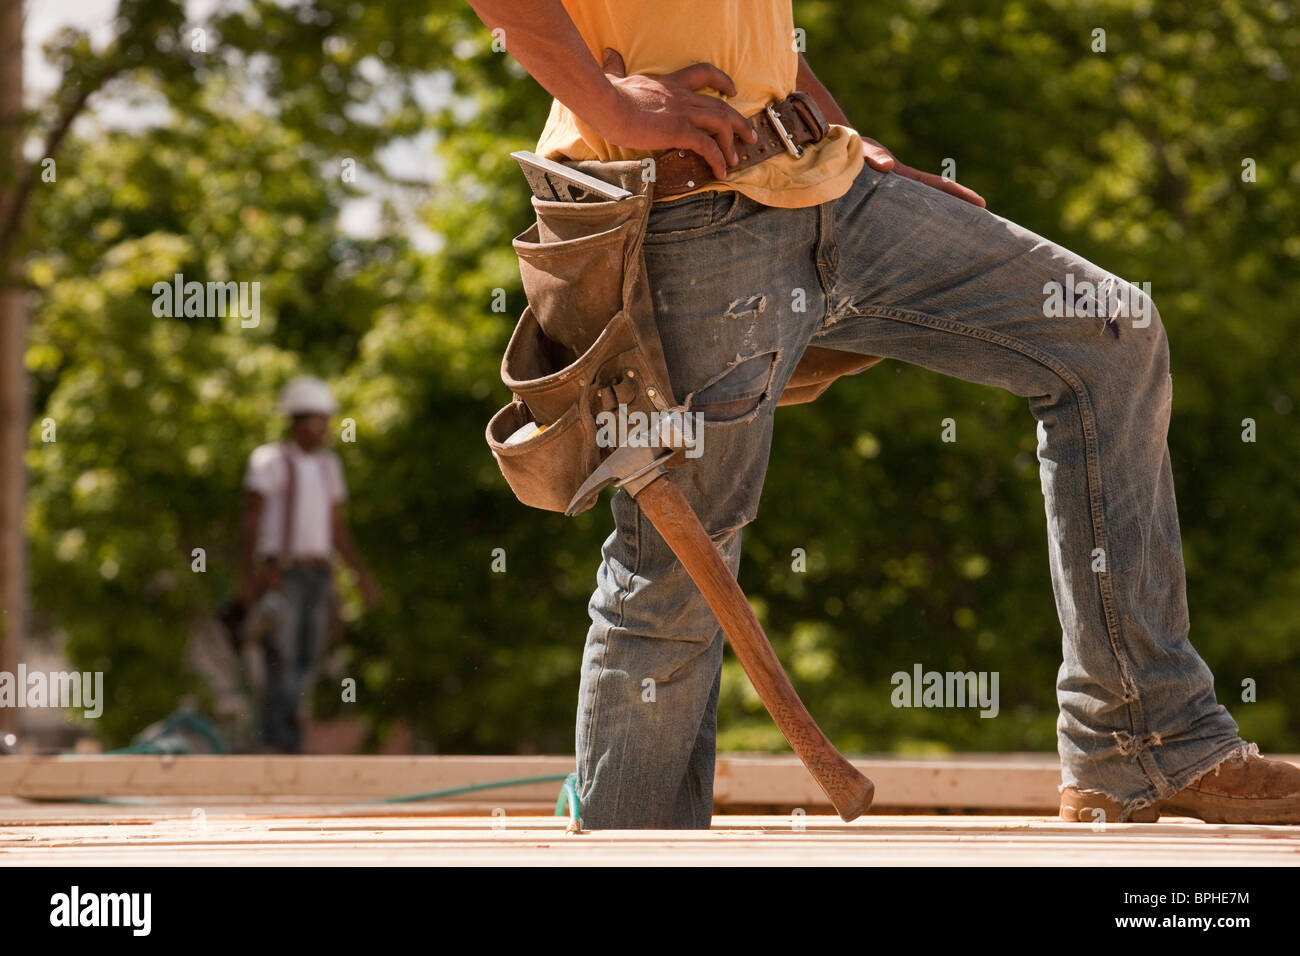 Carpenter standing at a construction site Stock Photo